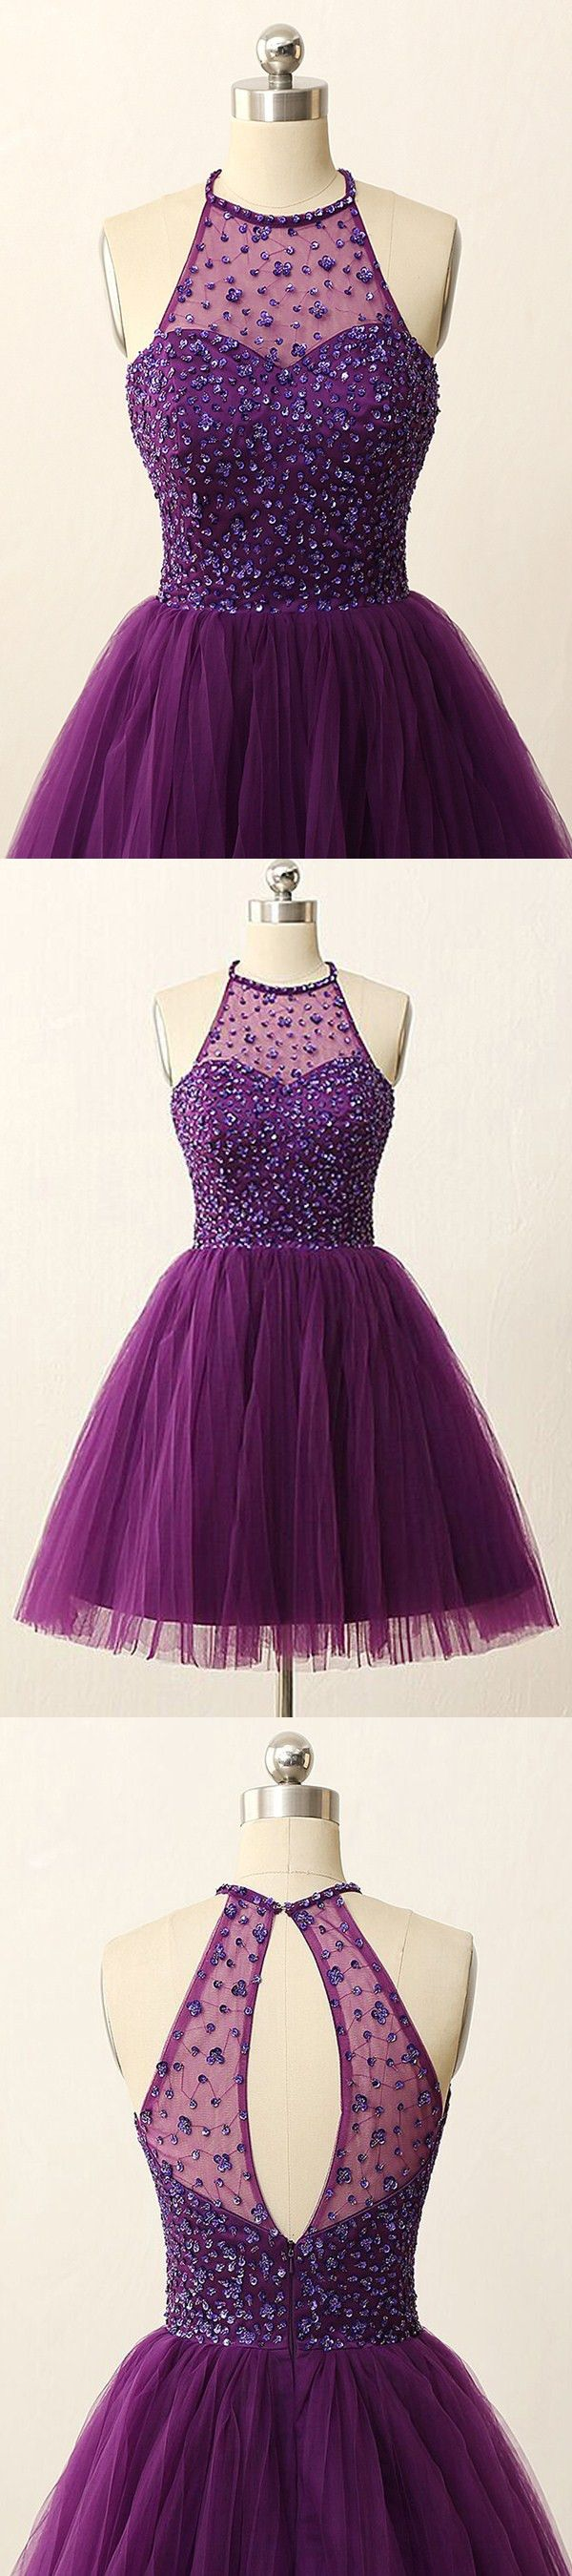 homecoming dresses,2016 homecoming dresses,short purple homecoming dresses,short prom dresses,halter homecoming dresses,cheap purple homecoming dresses for teens,sparkle homecoming dresses